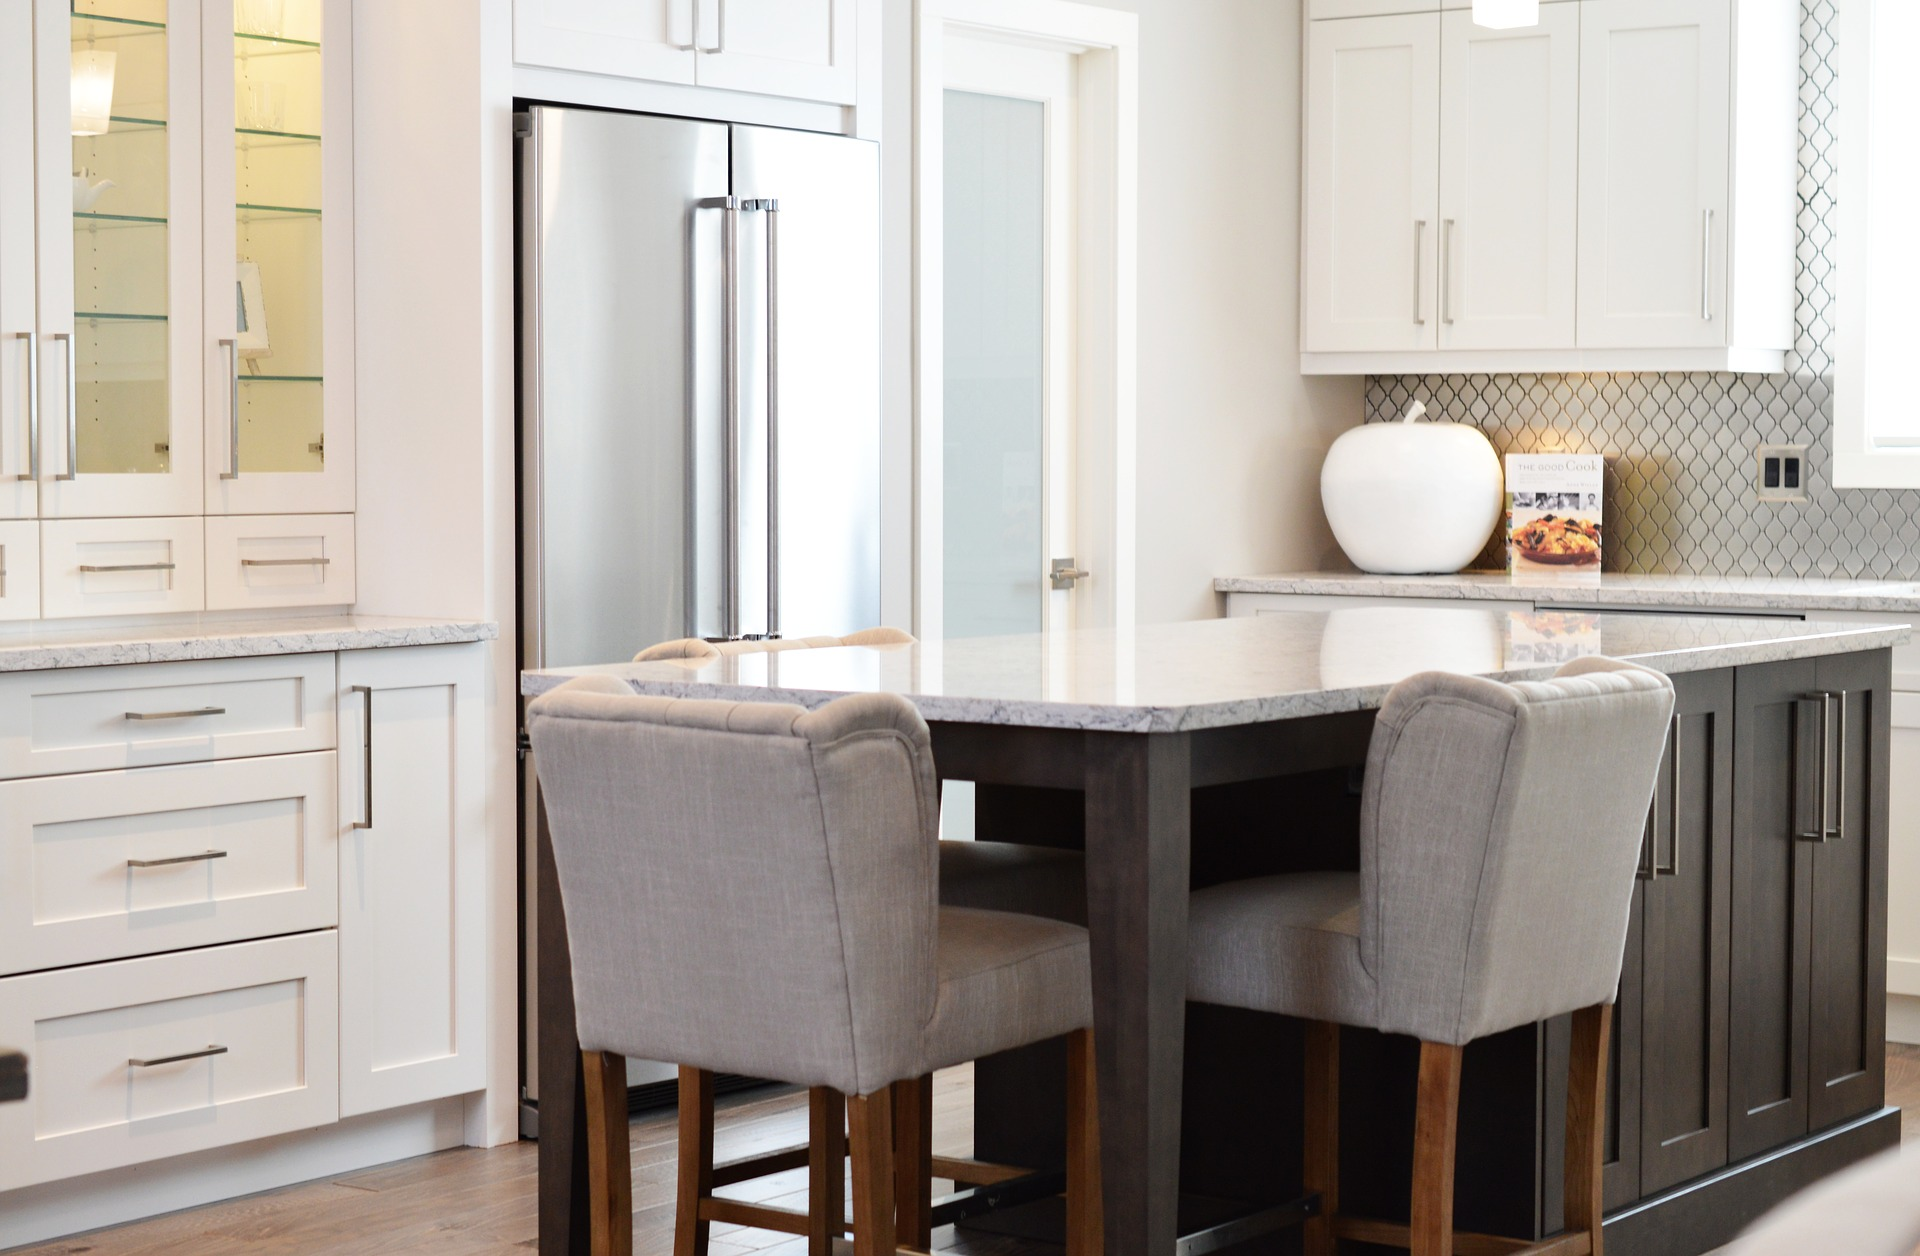 Finally, it's time to start treating your kitchen as a family hub instead of just the room where you prepare dinner. Make sure that it's comfortable - if you have kids and you like to be able to help them with their homework then invest in a big table where they can sit to study while you're cooking in the evening.